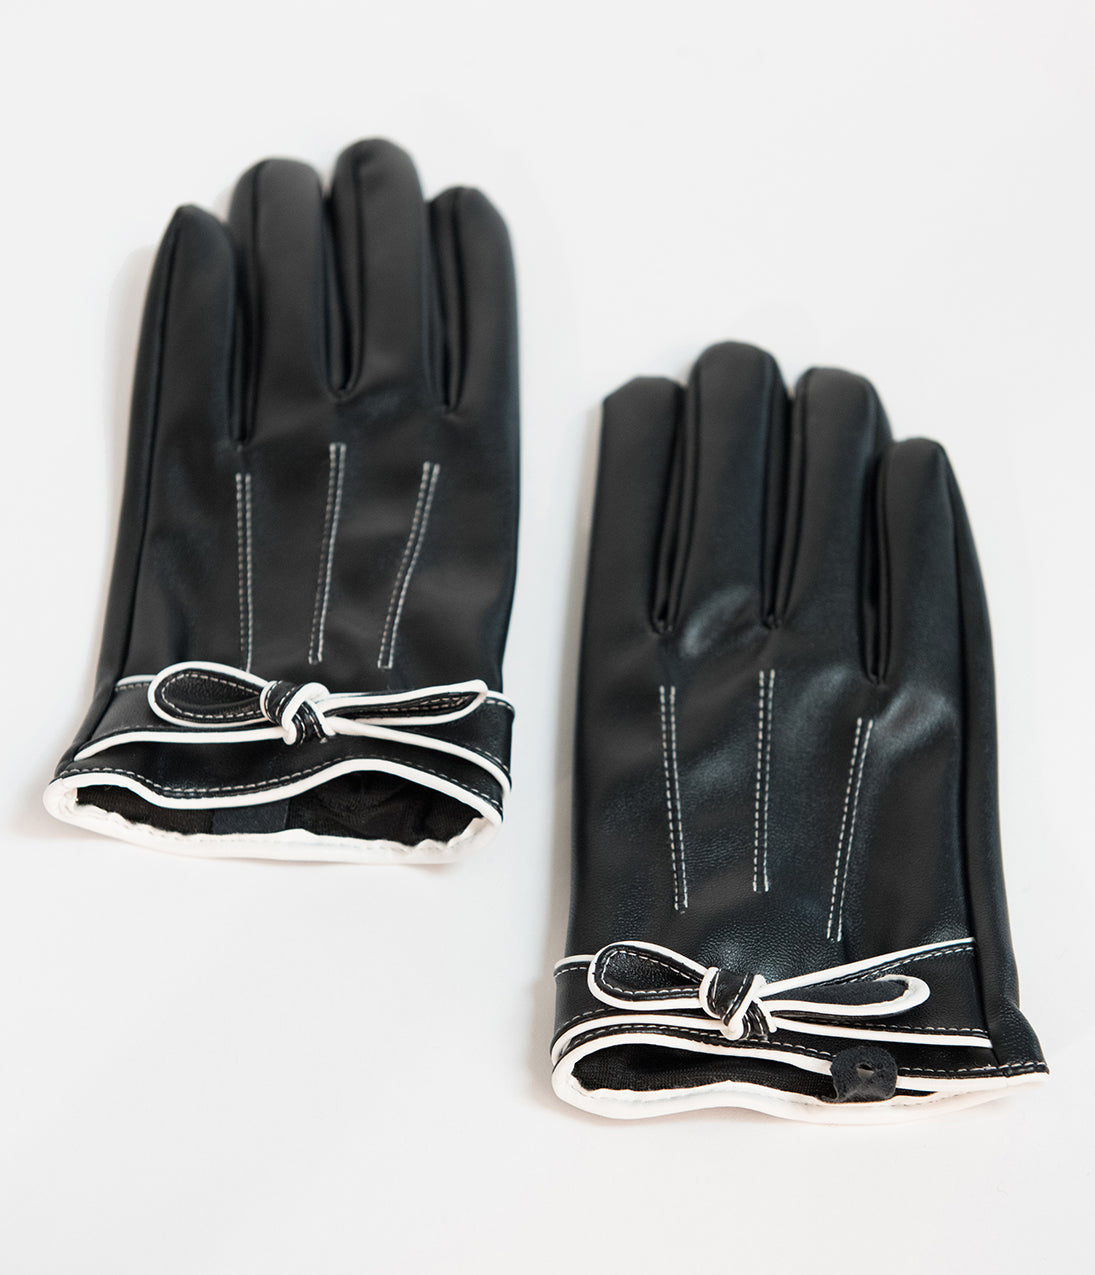 Vintage Style Gloves- Long, Wrist, Evening, Day, Leather, Lace Unique Vintage Black Leatherette Bow Short Gloves $24.00 AT vintagedancer.com